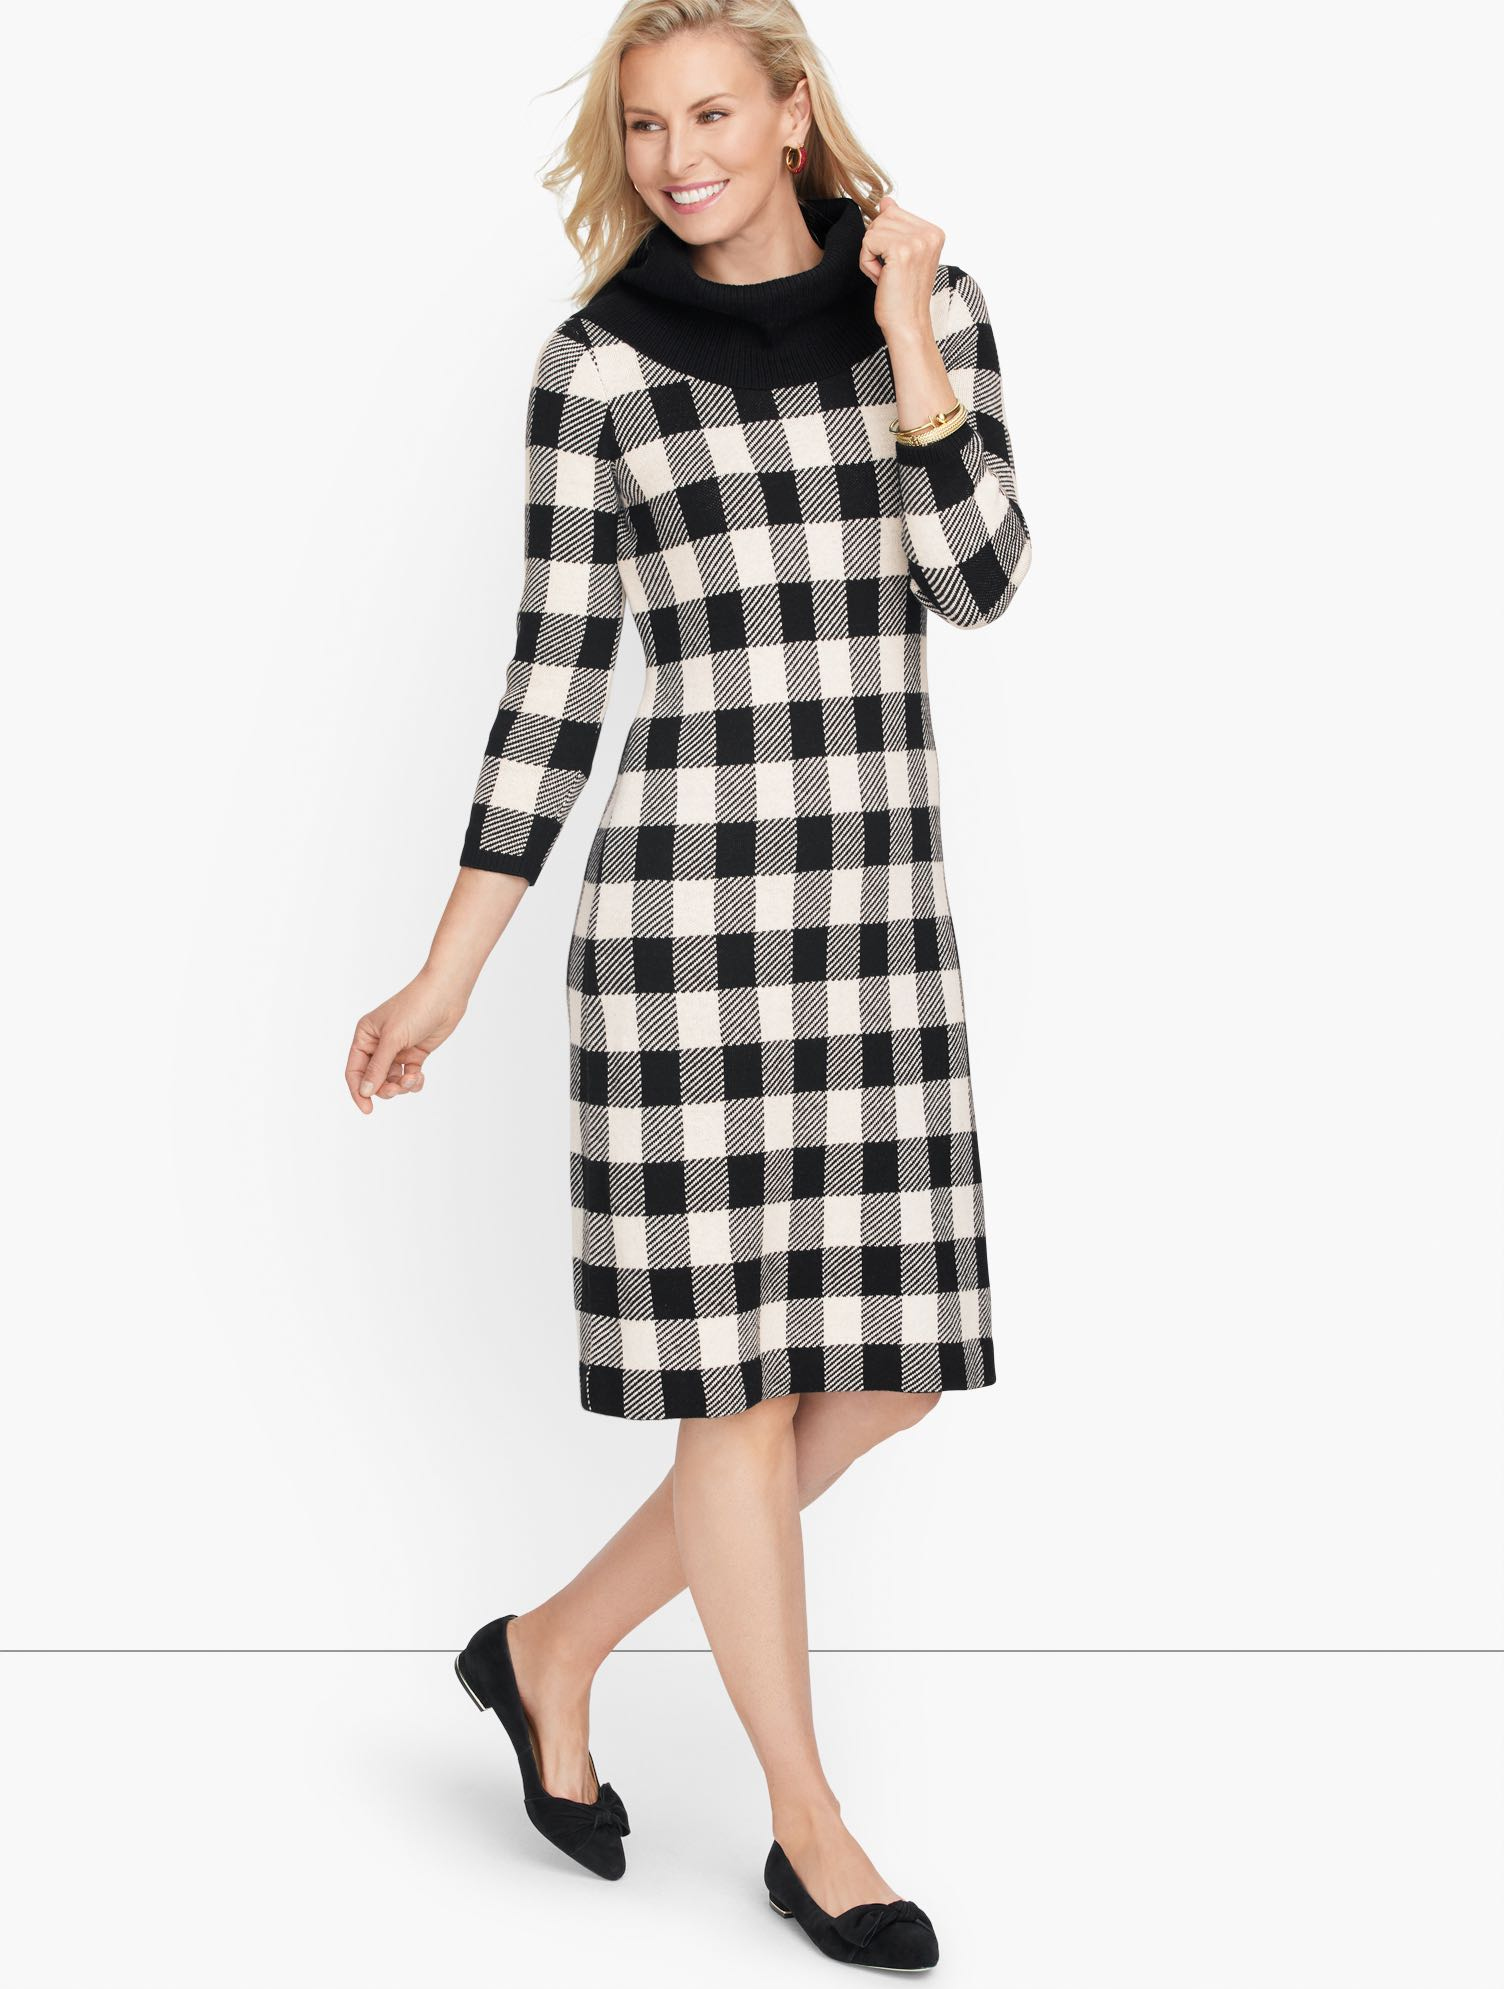 Vintage Style Dresses | Vintage Inspired Dresses Super soft Buffalo Check Shift Dress - BlackIvory - 3X Talbots $149.00 AT vintagedancer.com